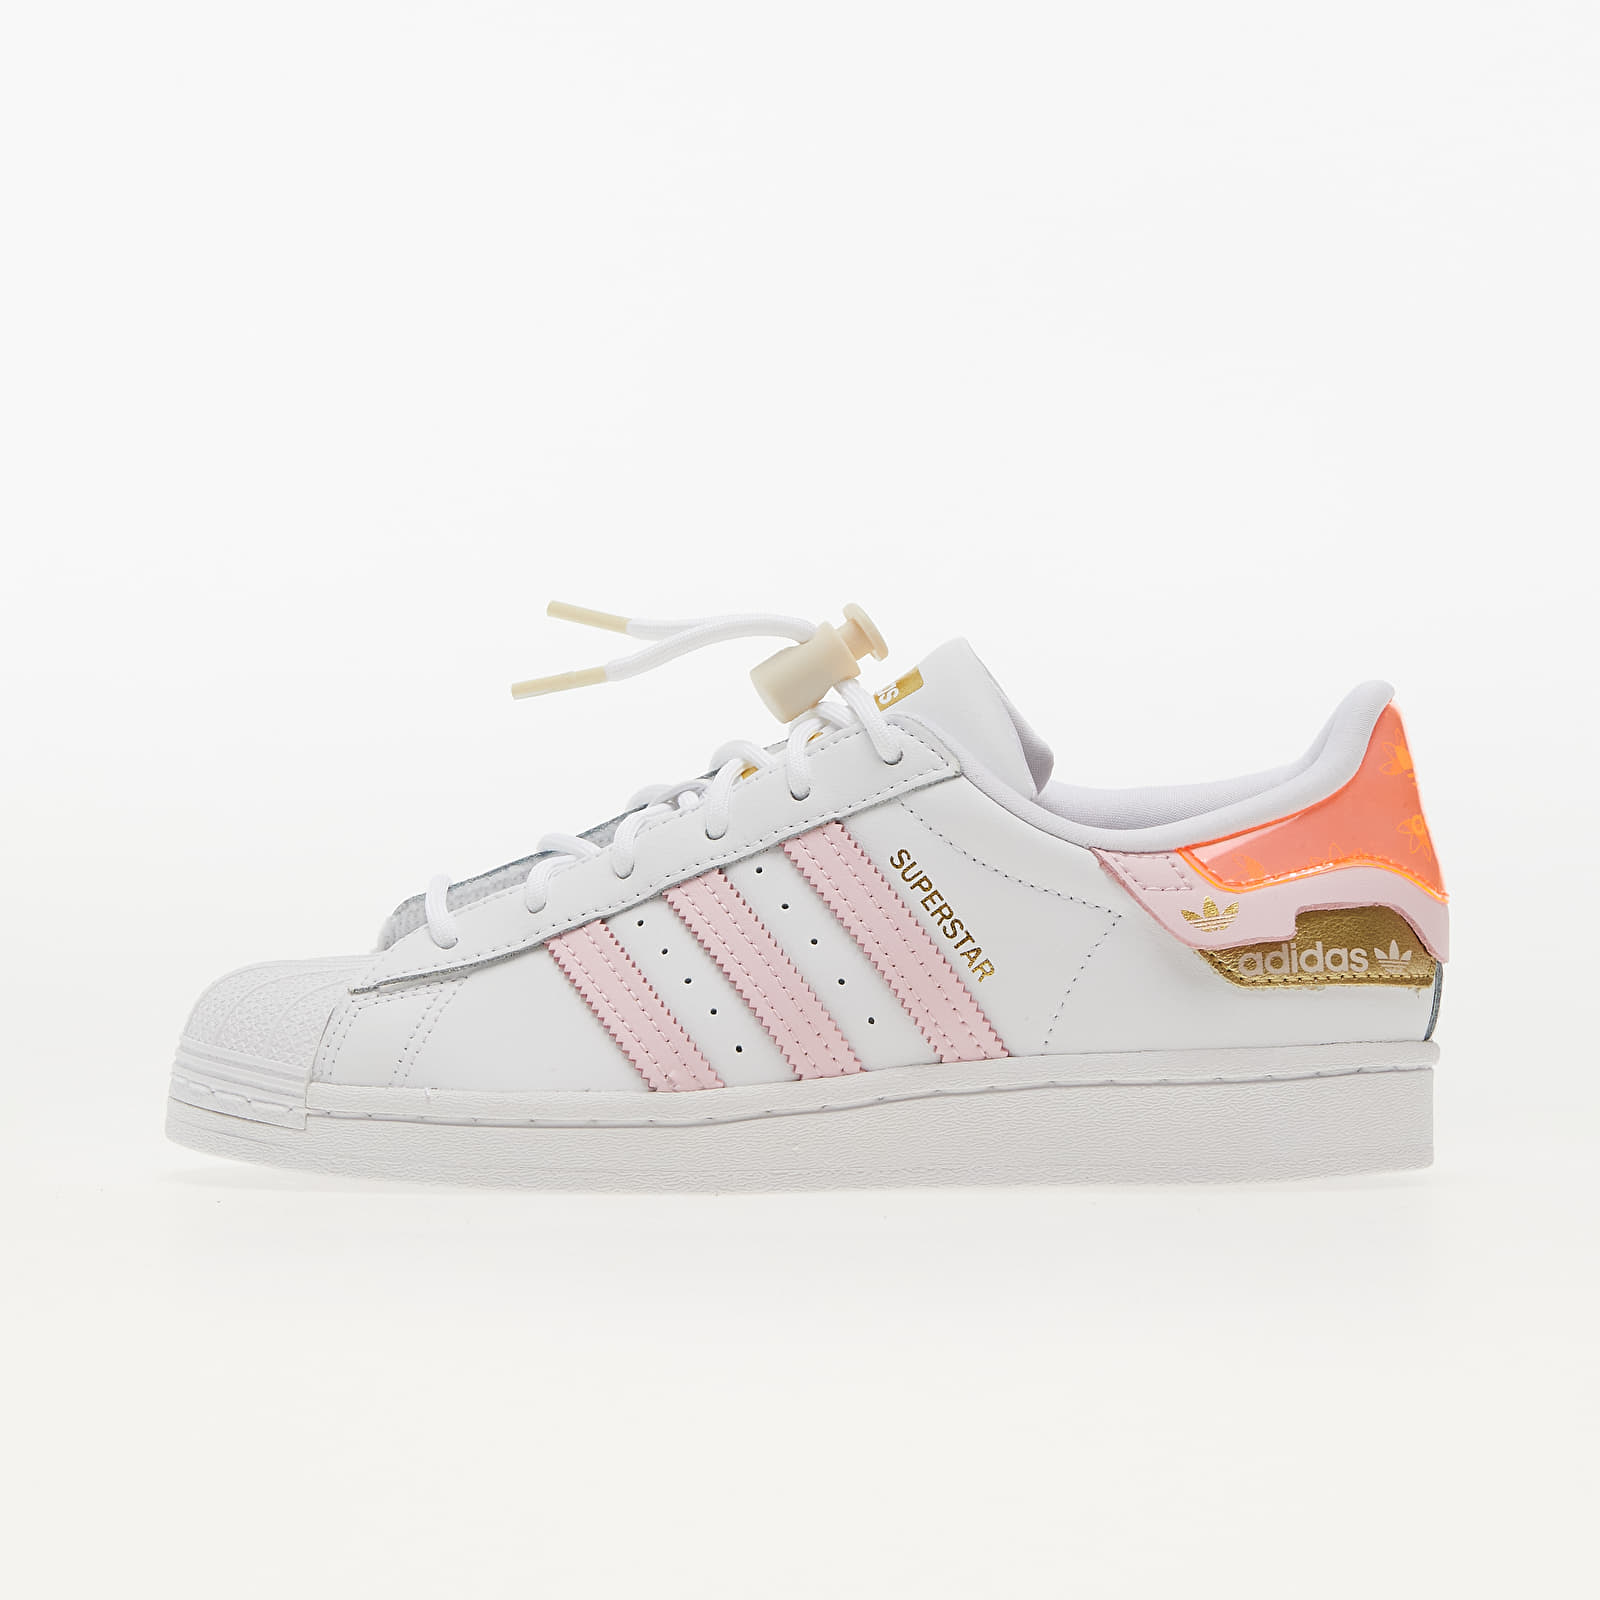 adidas Superstar W Ftw White/ Clear Pink/ Solar Red EUR 41 1/3